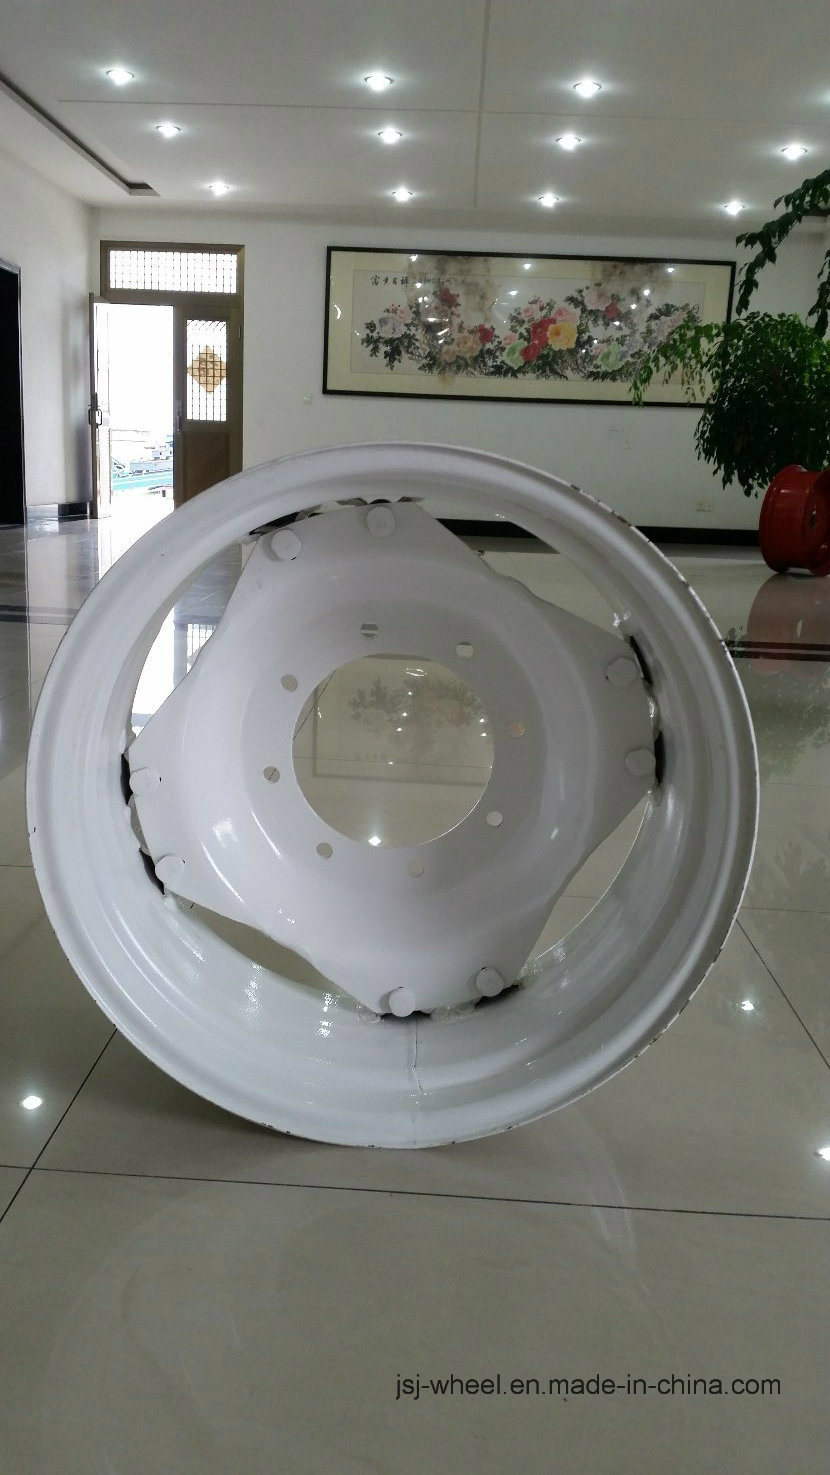 Wheel Rims for Tractor/Harvest/Machineshop Truck/Irrigation System-5